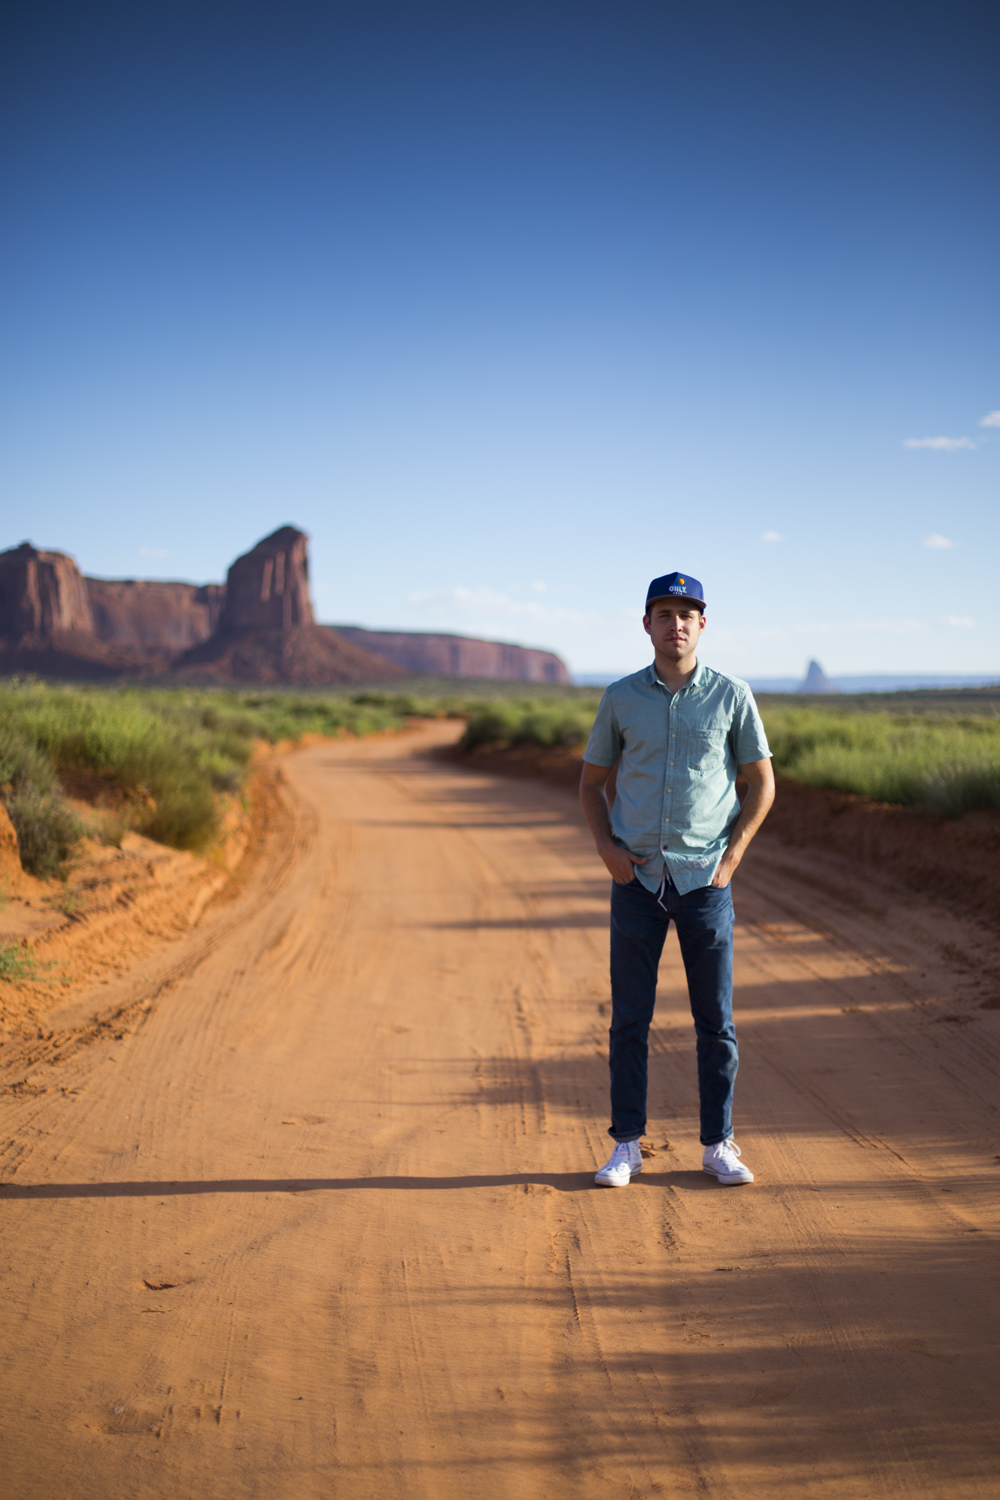 Another one of Jon Jenkins in Monument Valley  Canon 6d, Canon 50mm f/1.4 (iso100, f/1.6, 1/4000s)